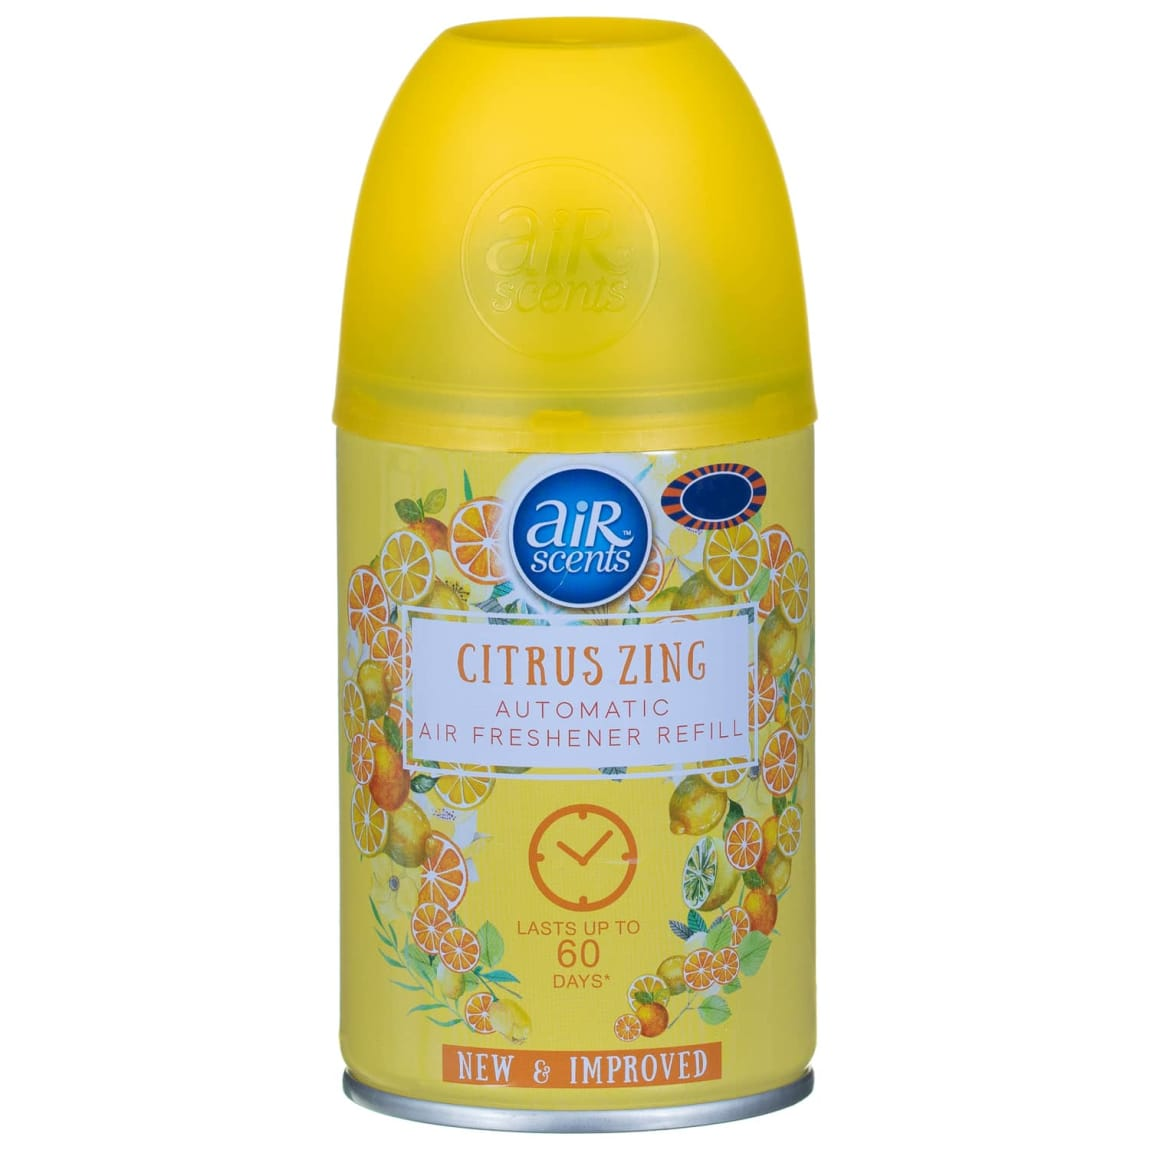 AirScents Automatic Air Freshener Refill 250ml - Citrus Zing